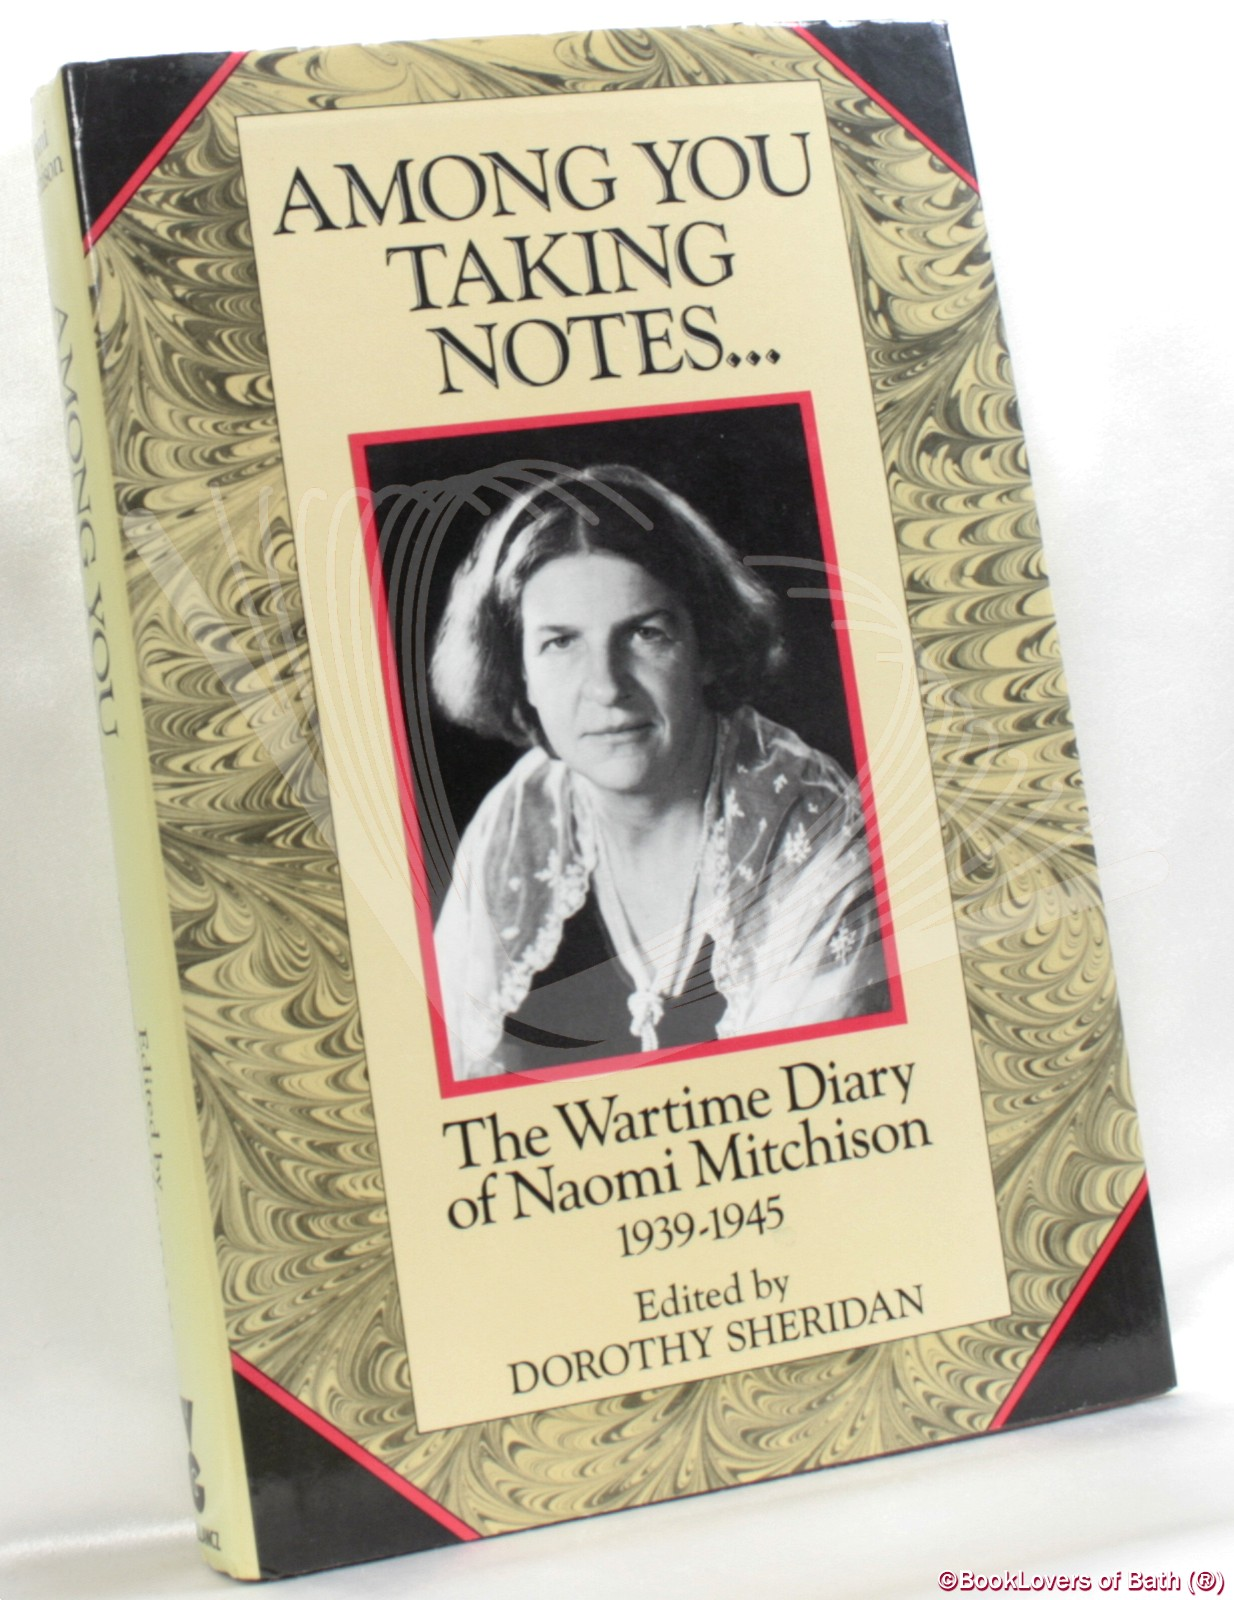 Among You Taking Notes: The Wartime Diary of Naomi Mitchison, 1939-1945 - Edited by Dorothy Sheridan